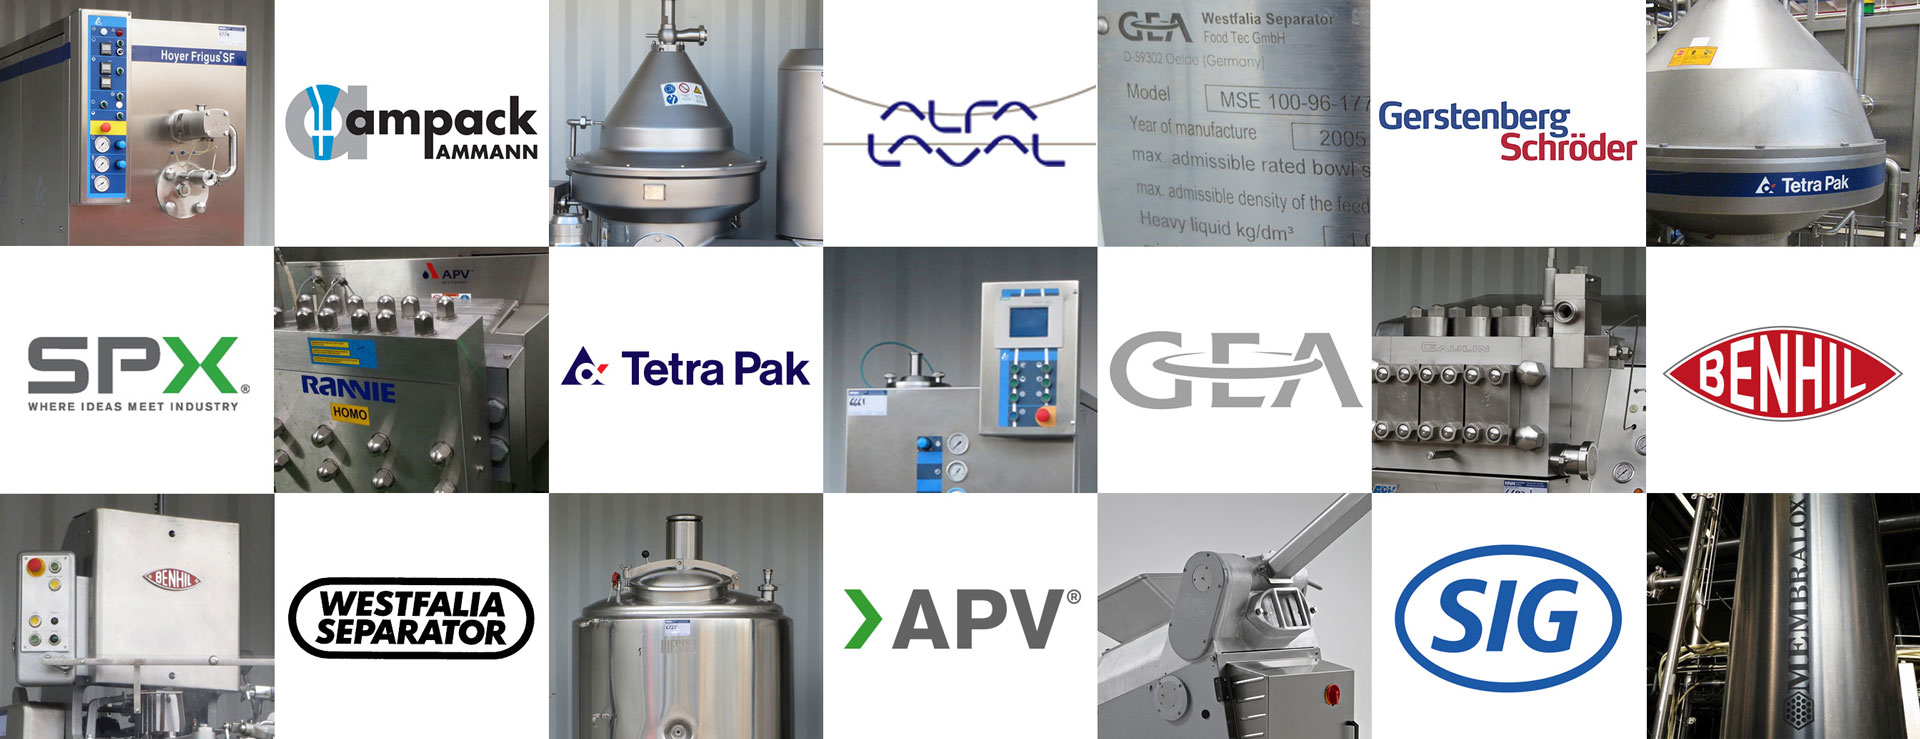 Storage industrial equipment for the feed industry